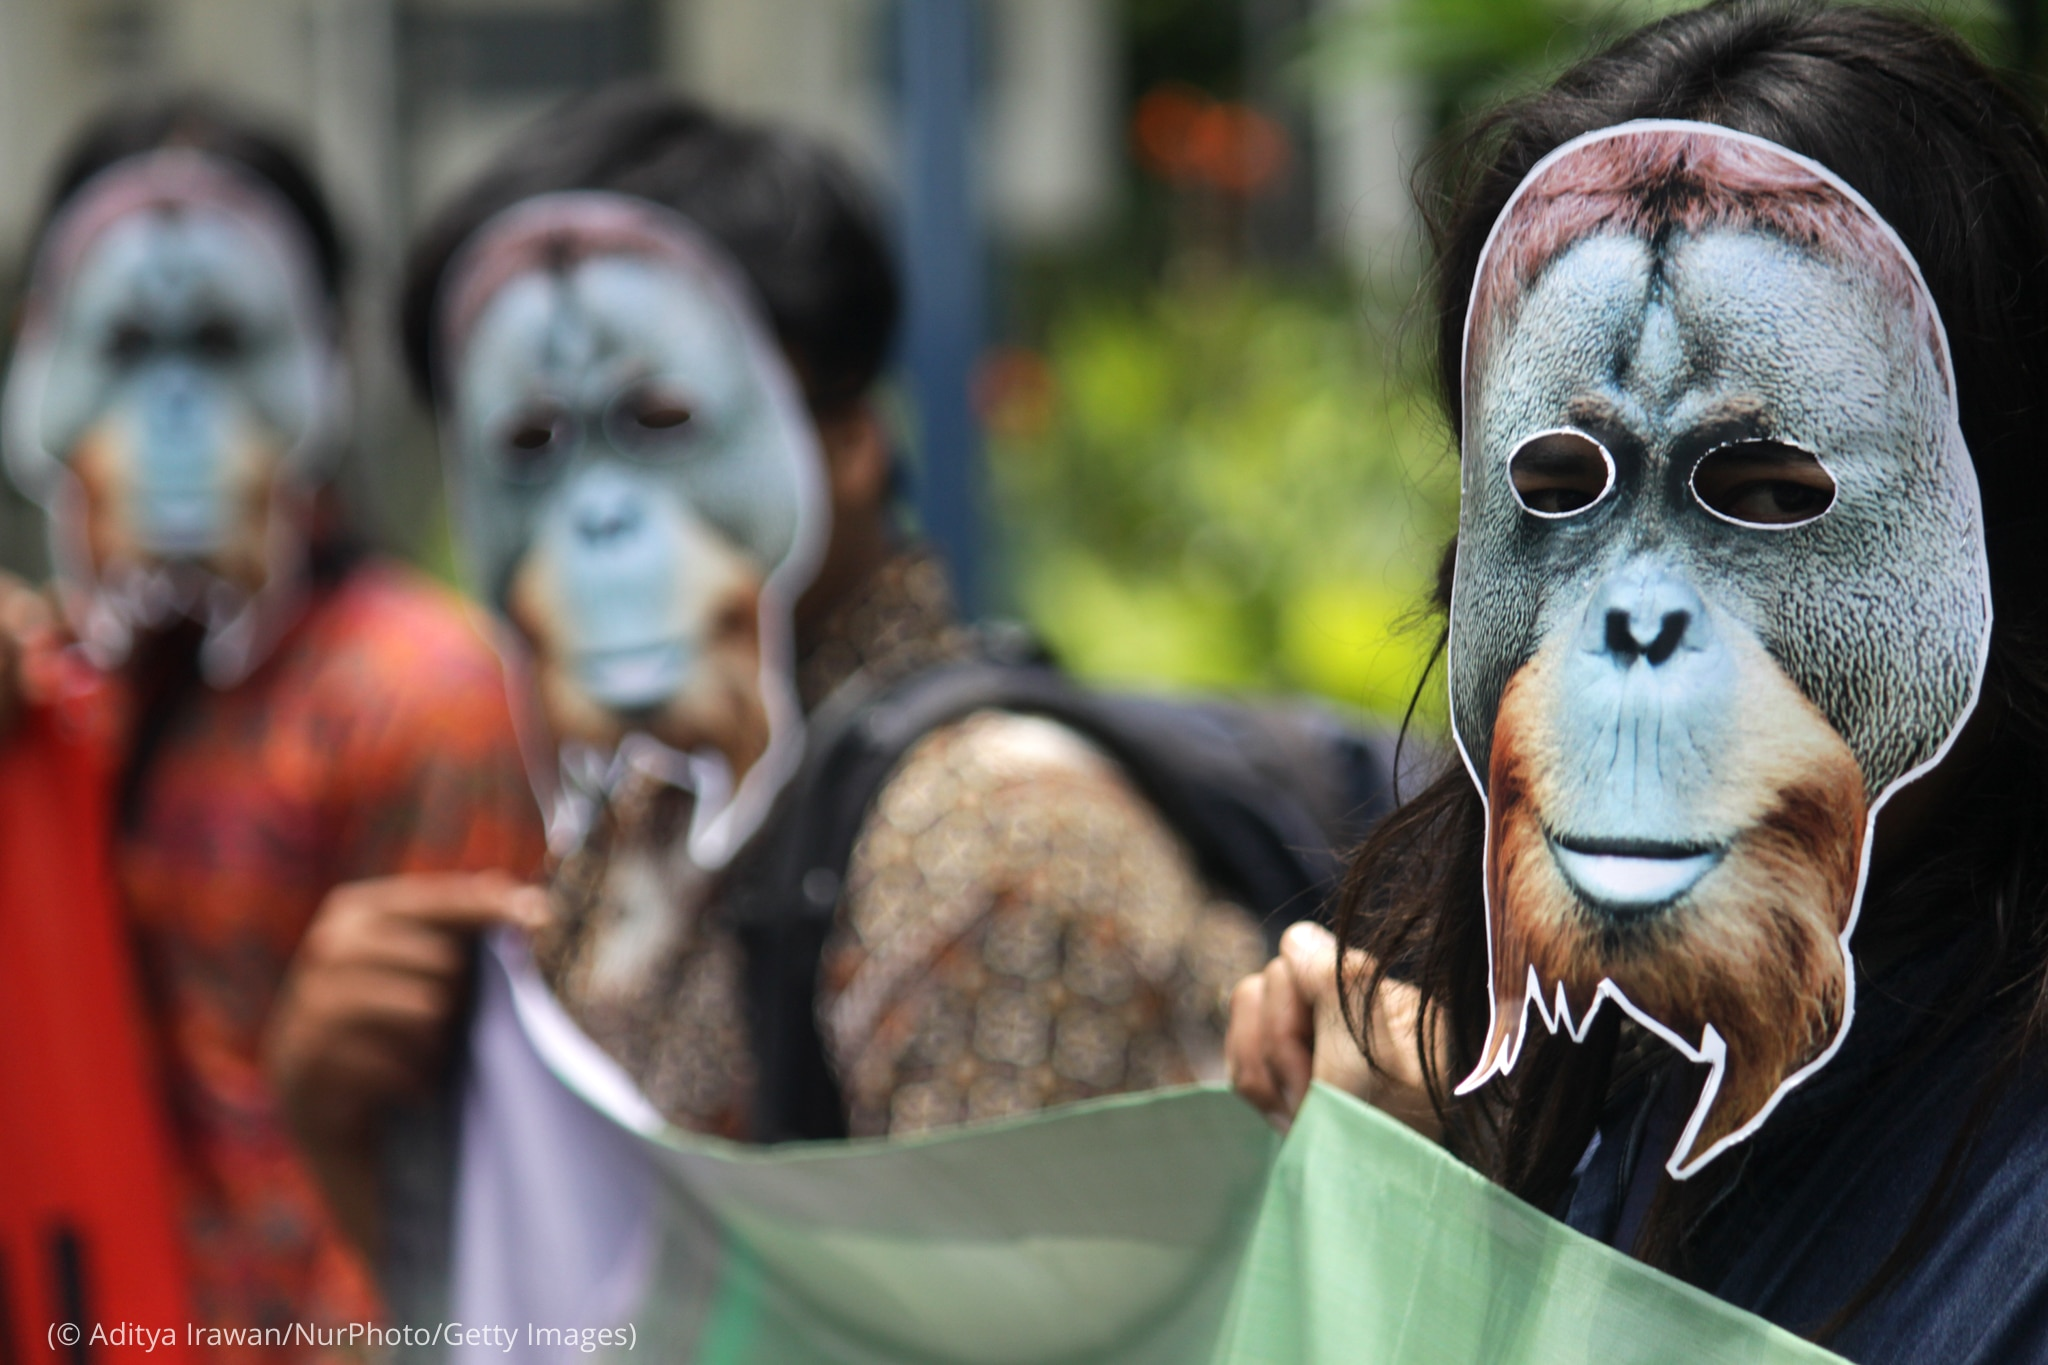 People wearing masks resembling orangutan faces (© Aditya Irawan/NurPhoto/Getty Images)